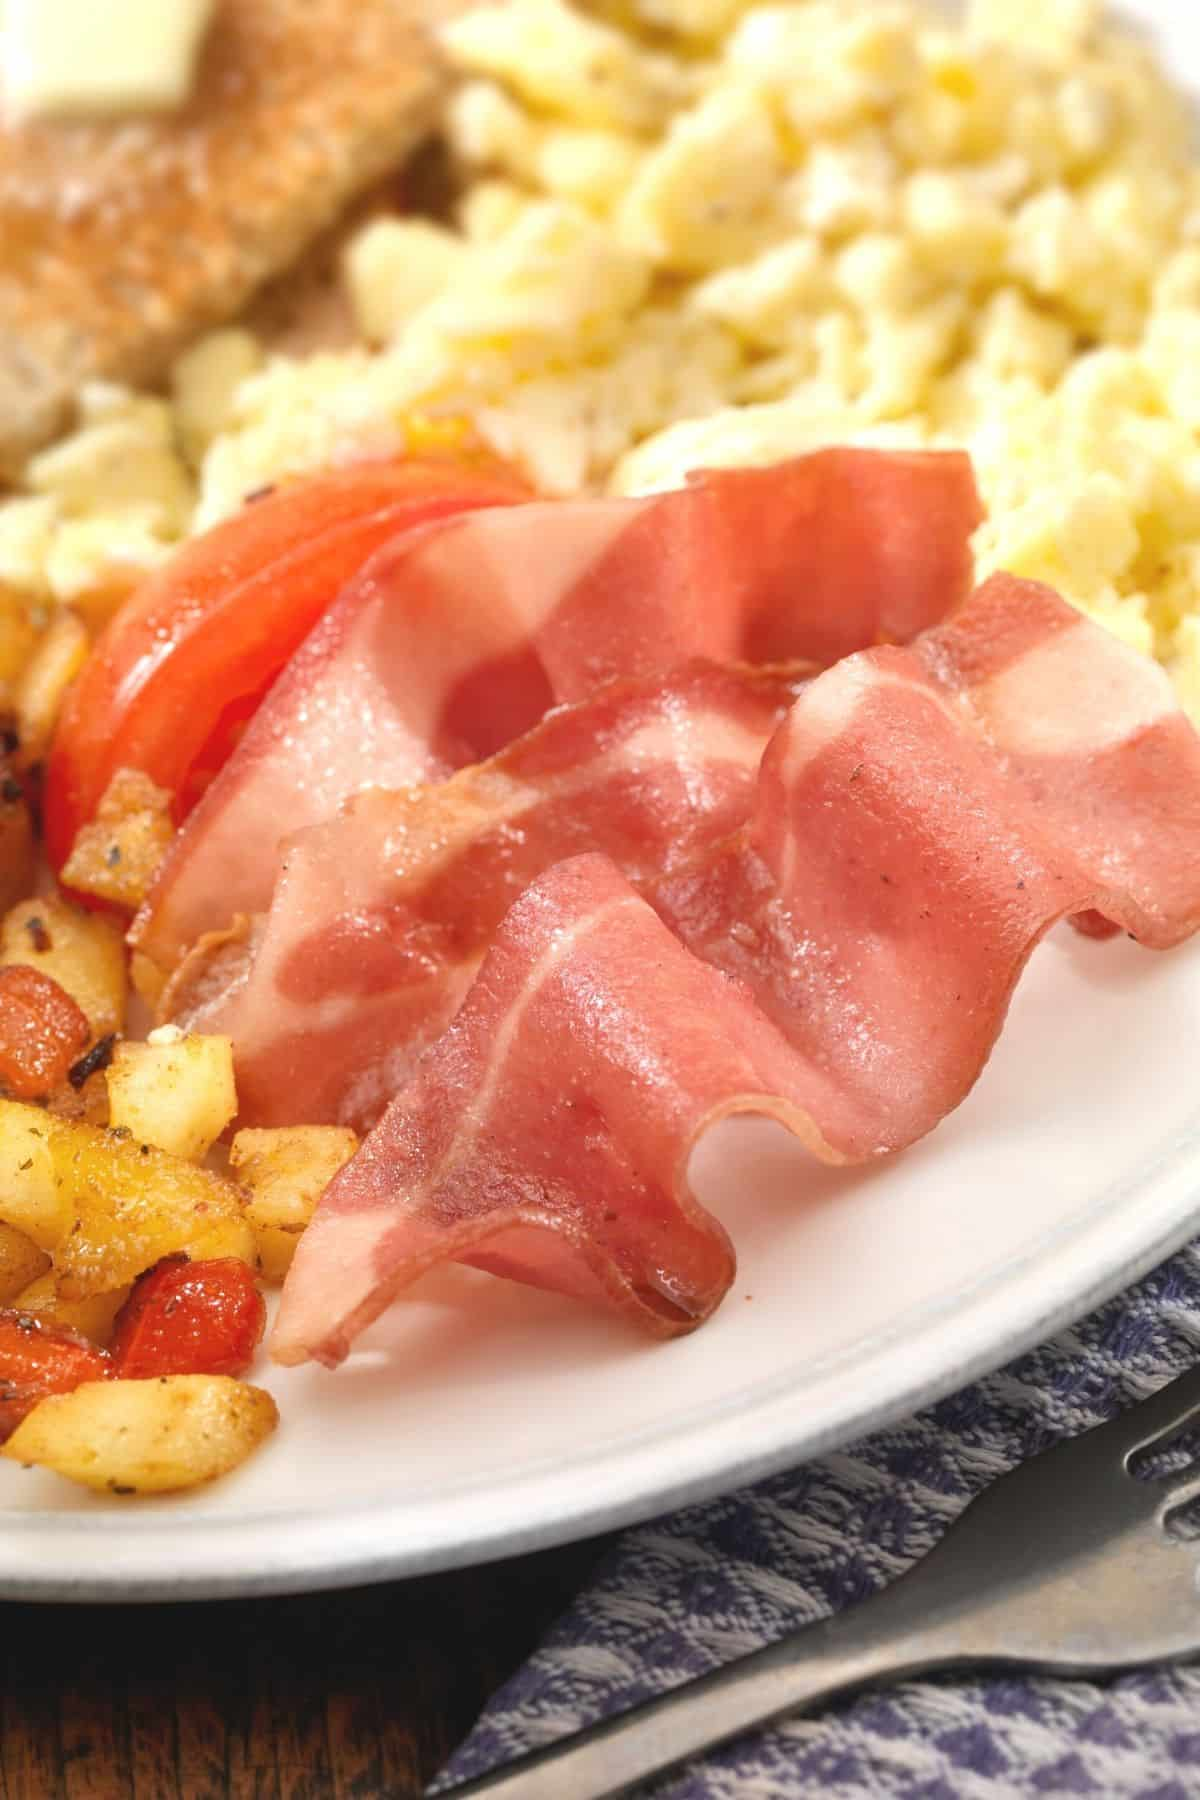 turkey bacon served on a plate with scrambled eggs and potatoes